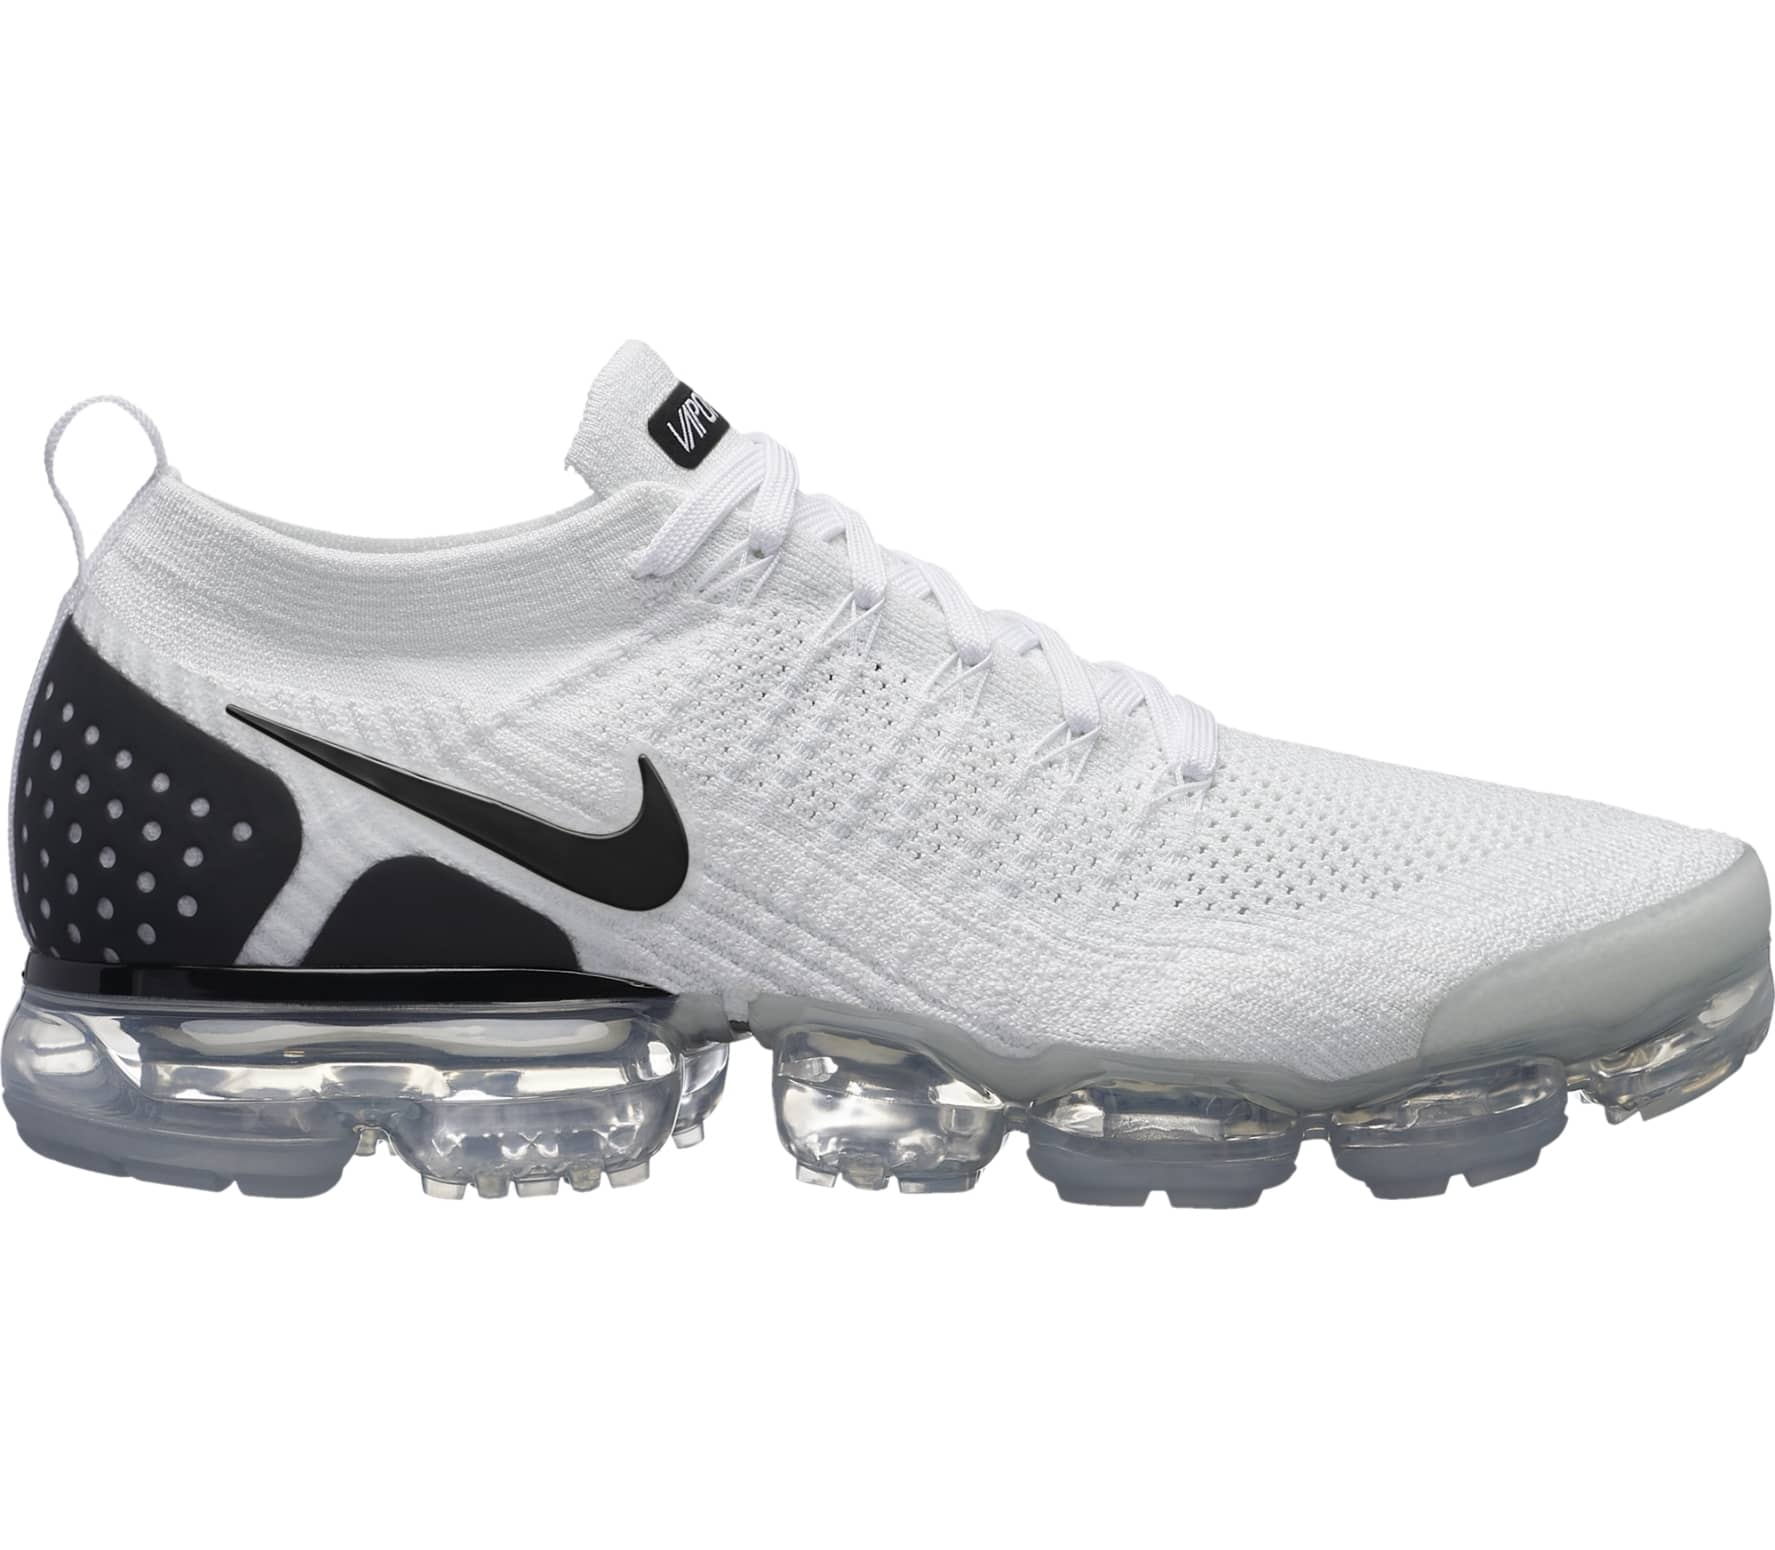 check out 6e115 bea79 Nike - Air VaporMax Flyknit 2 men s running shoes (white black)